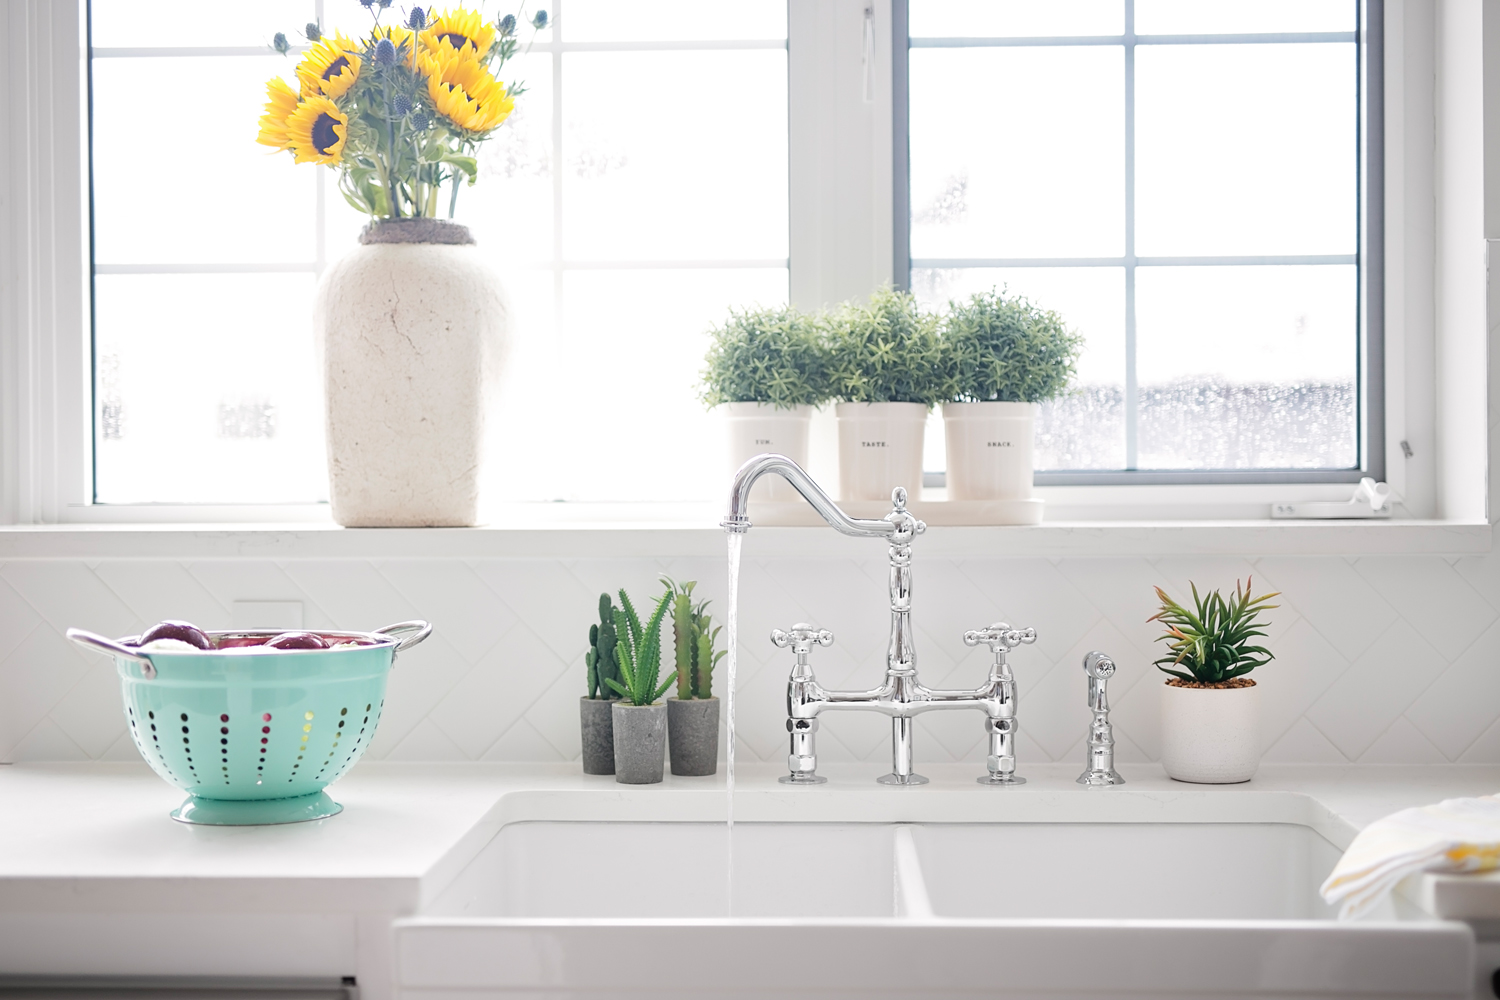 The window in this kitchen is amazing as it adds a focal design point where natural light fills the room. The sill becomes a lovely place to plant herbs or hold your favorite vase of sunflowers.